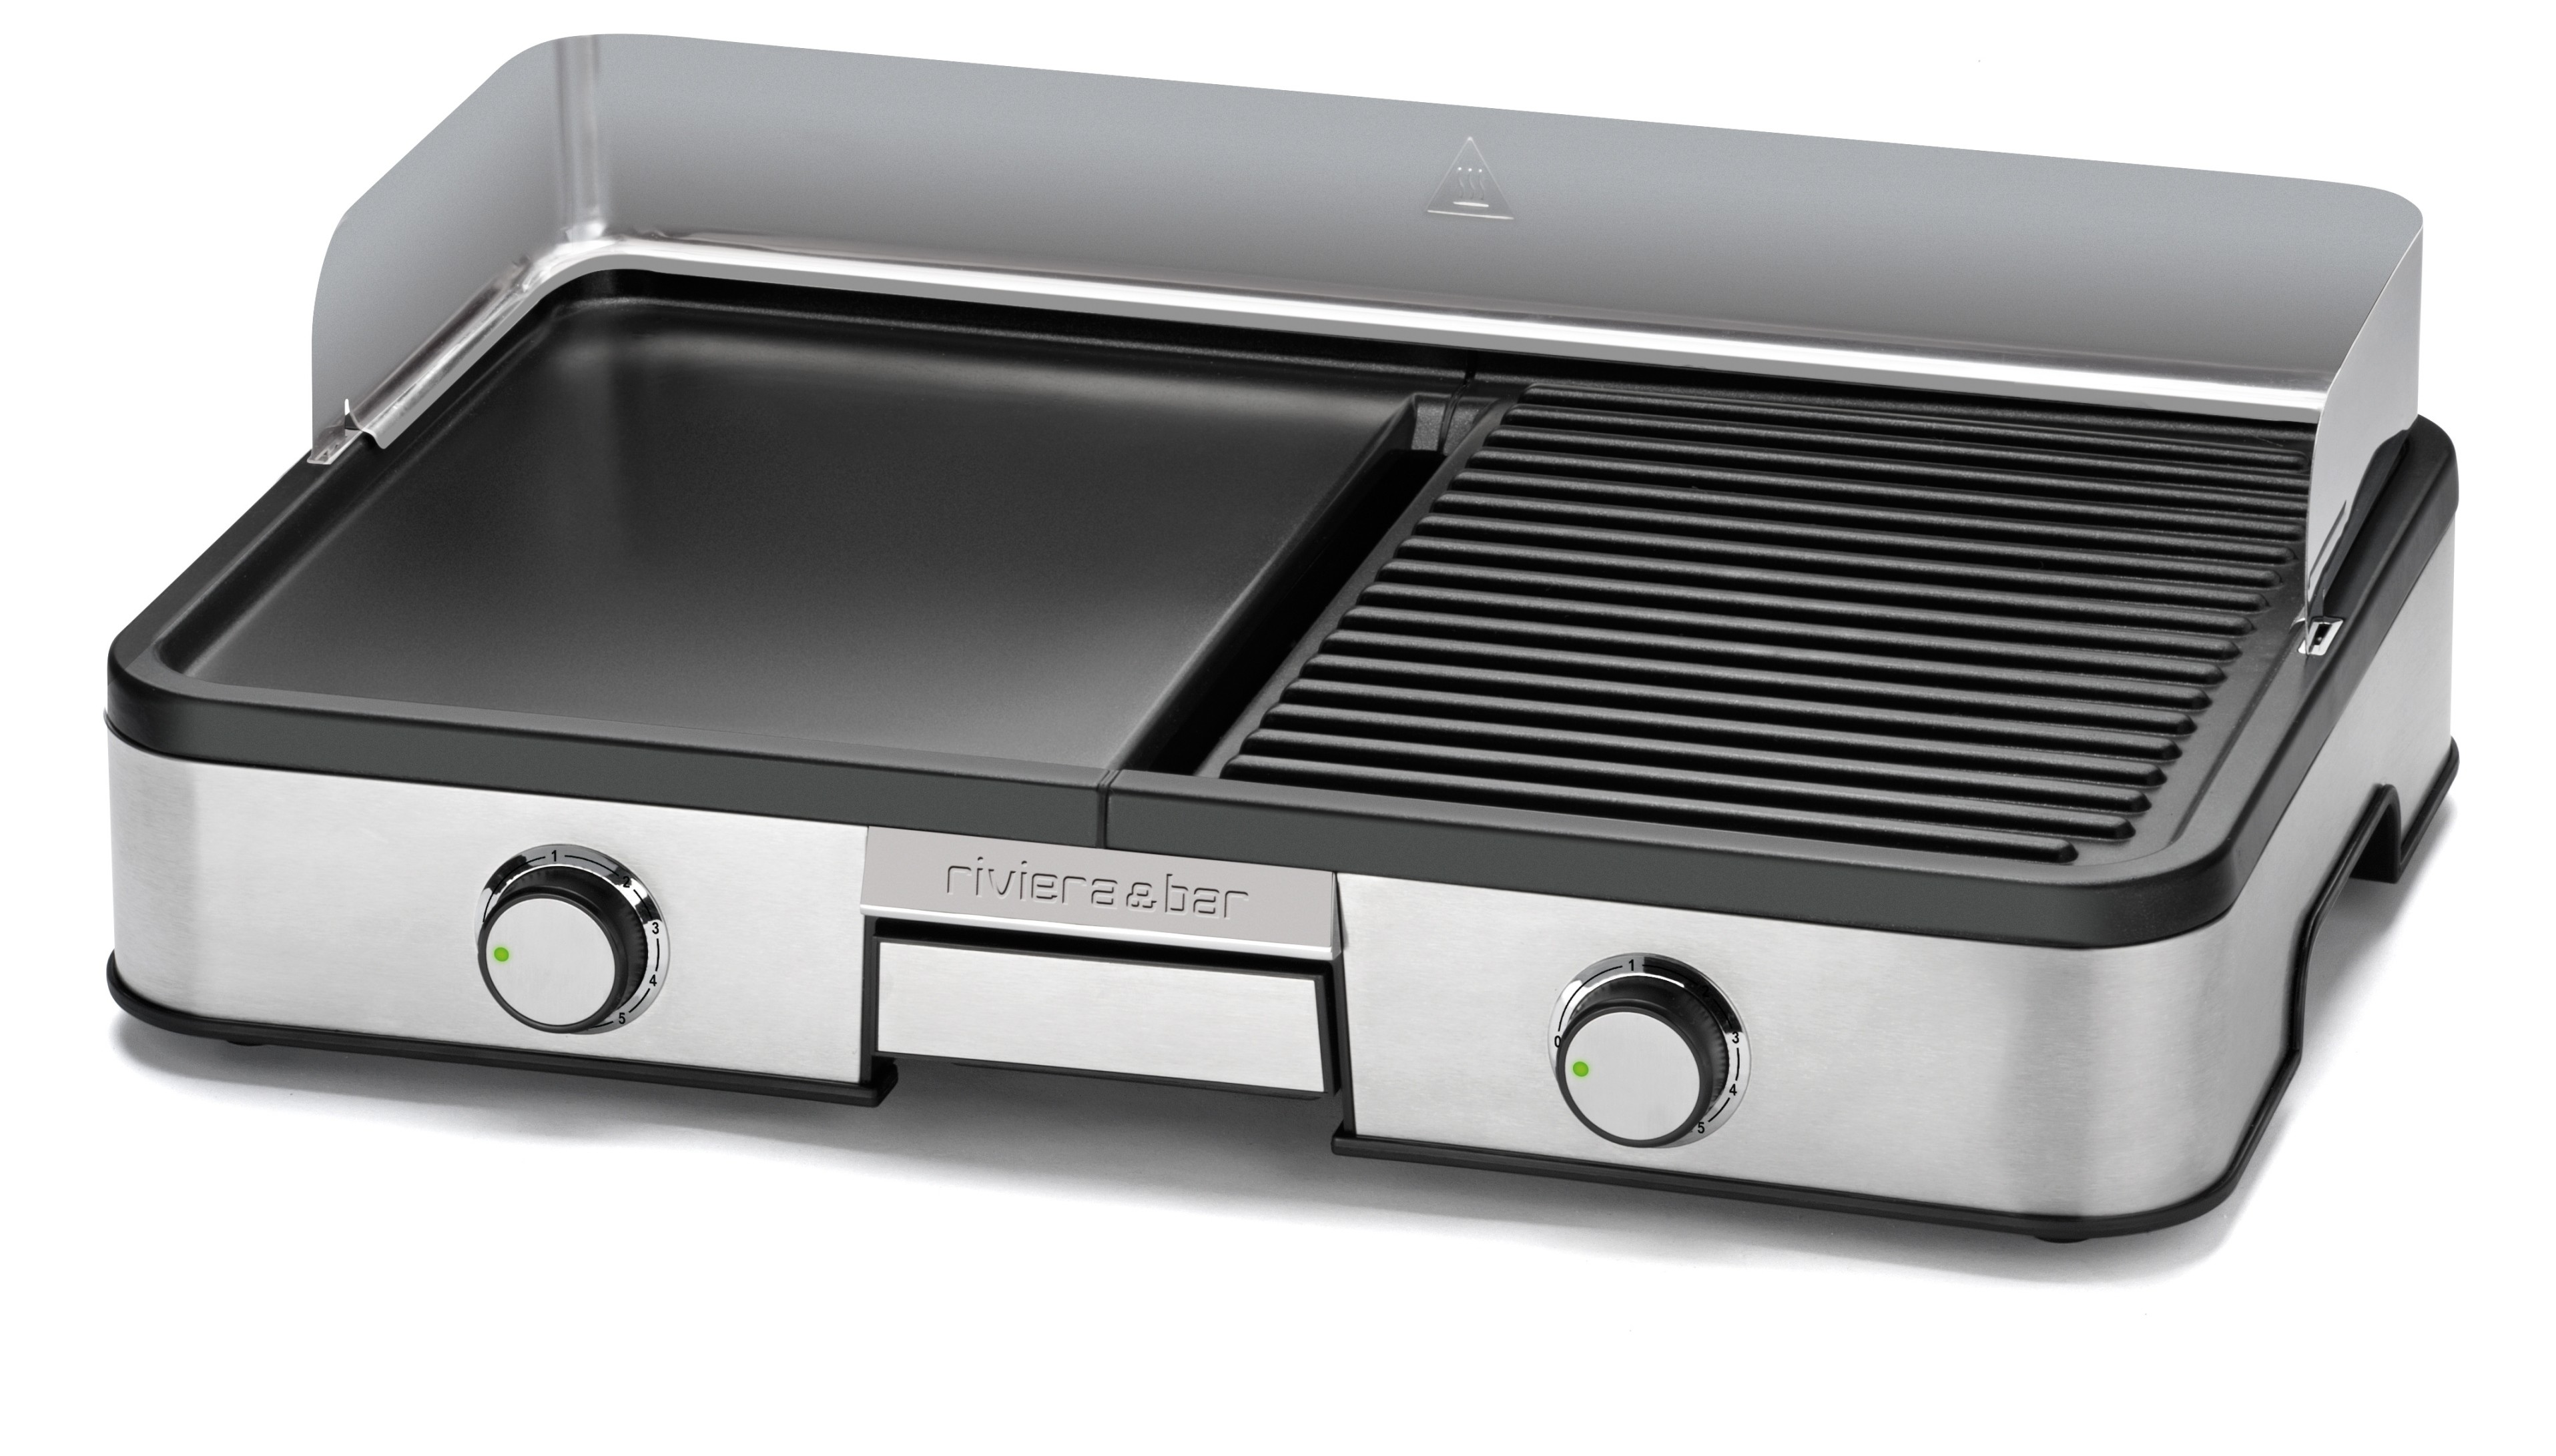 Plancha lectrique qc453a plancha grill riviera bar for Buro grill et bar